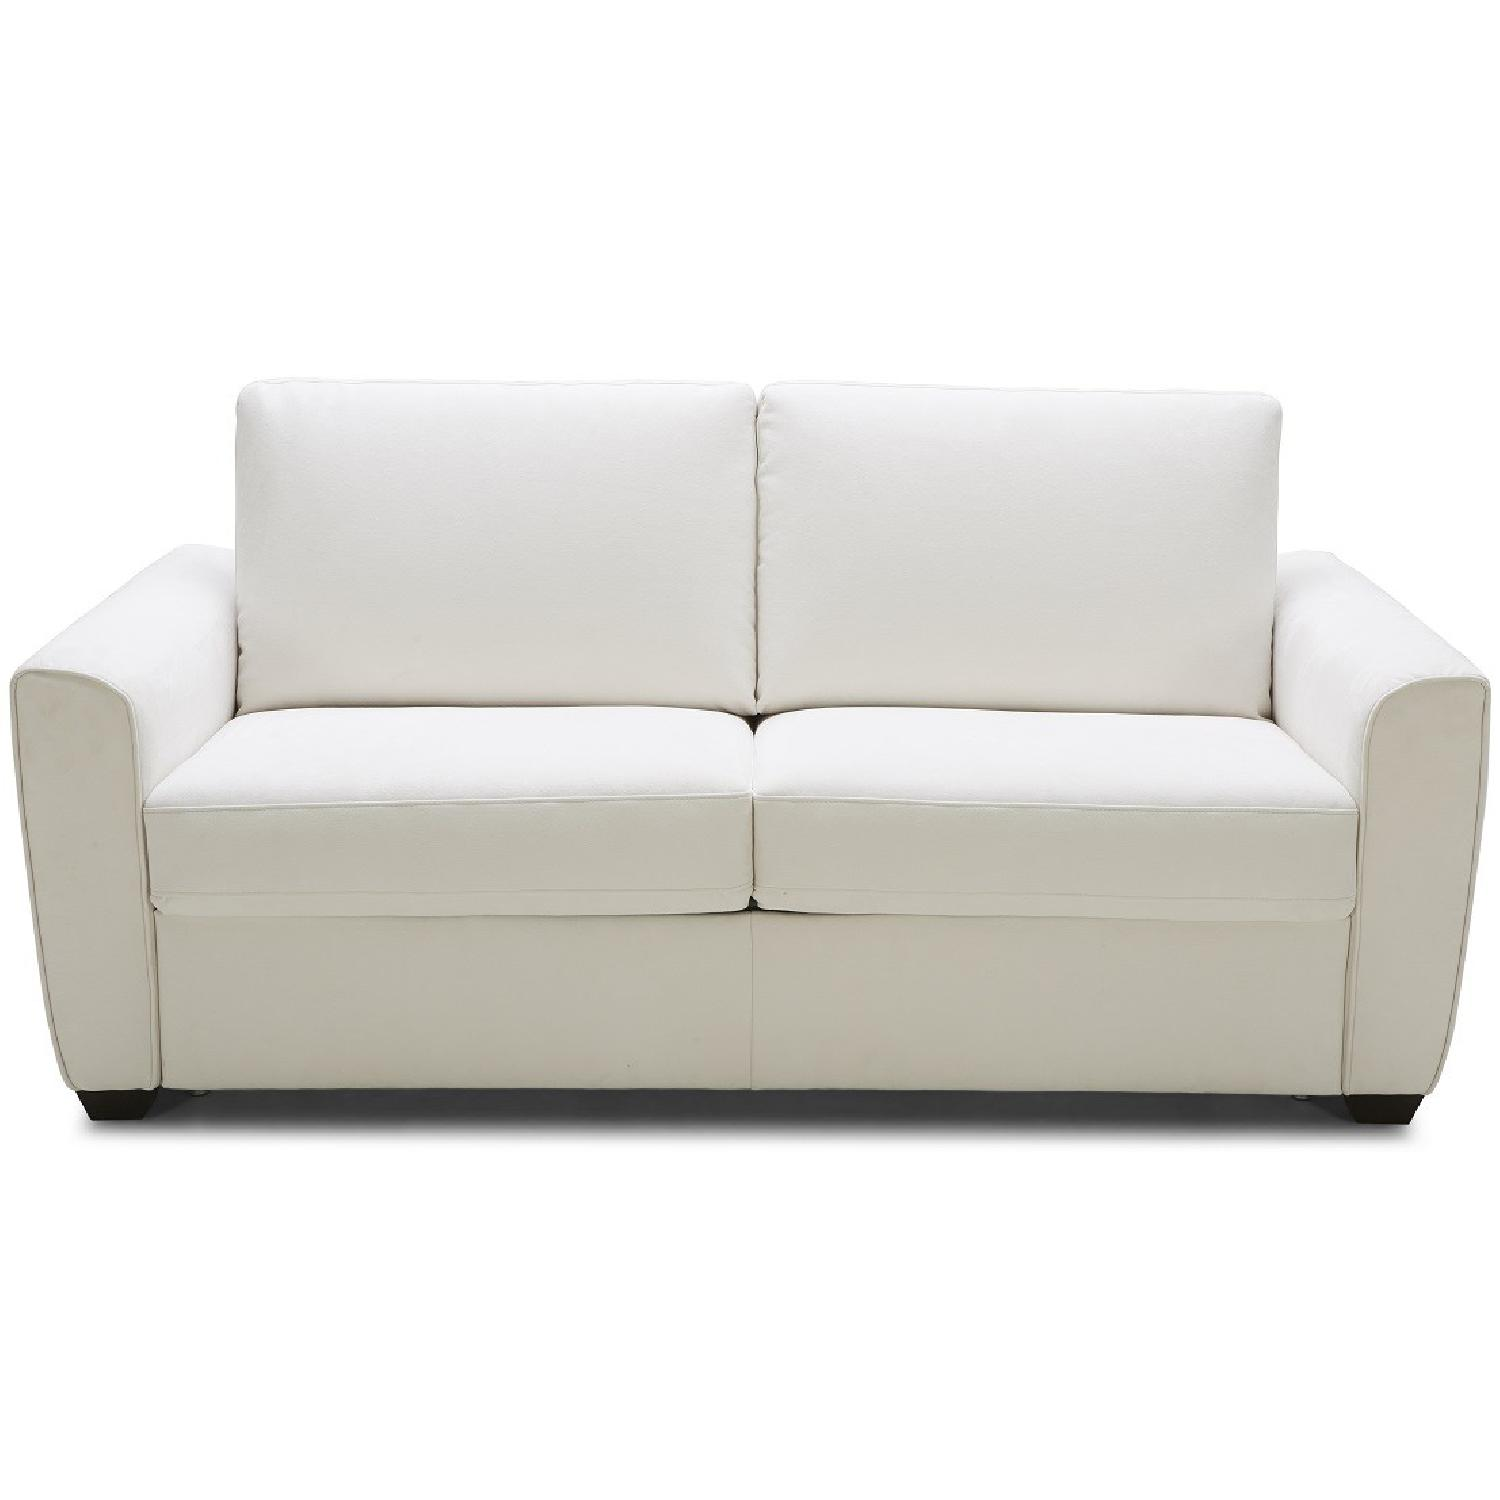 White Sofa Bed - image-0